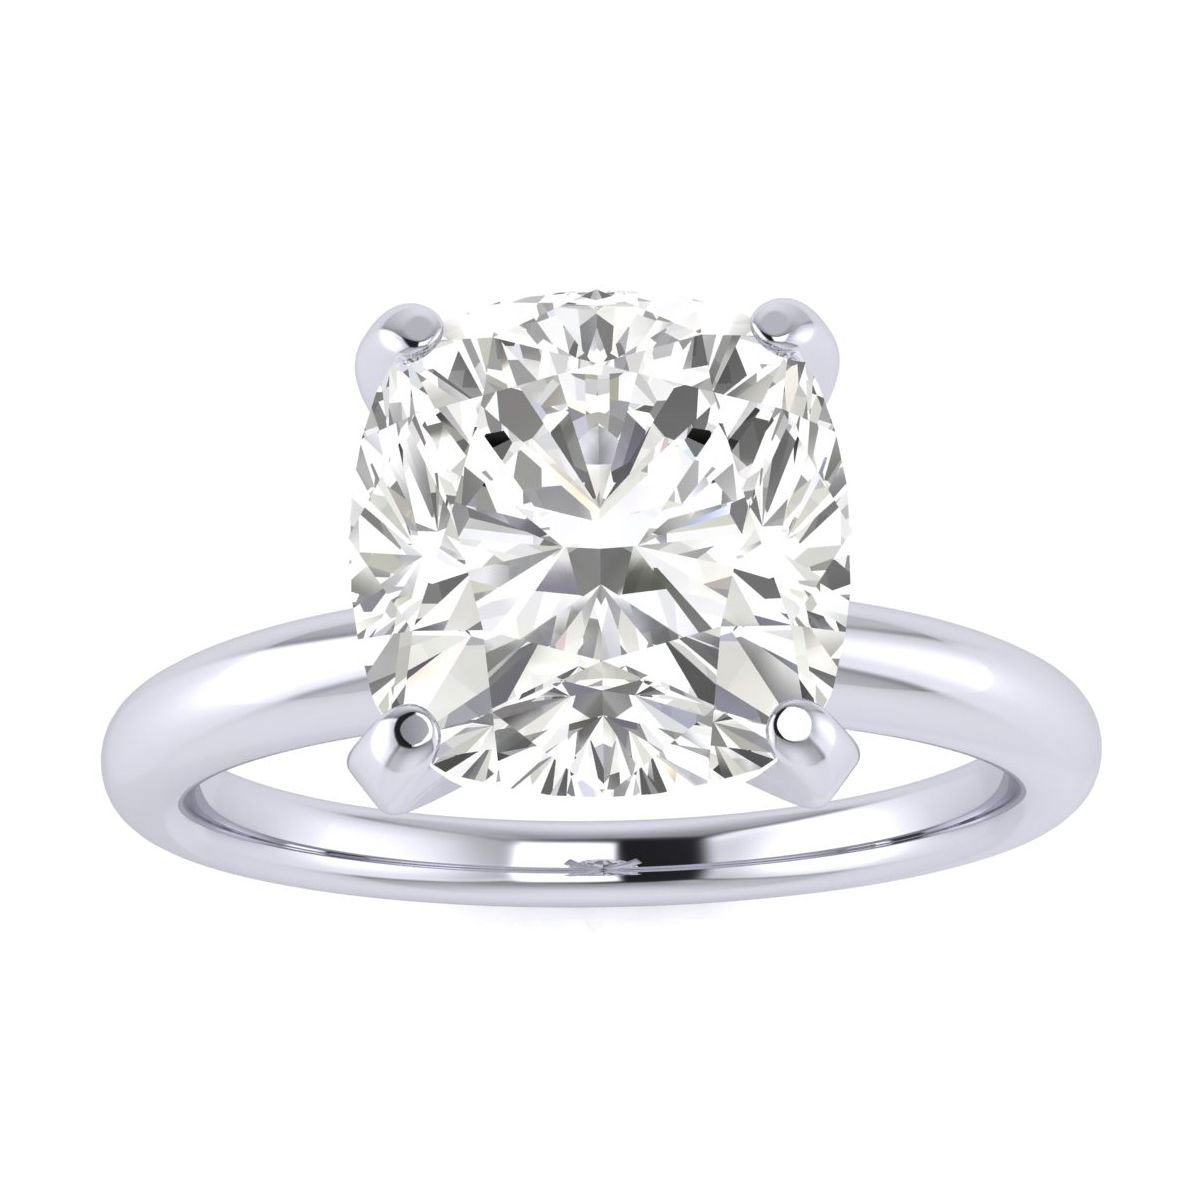 3ct Very Fine Cushion Diamond Solitaire in 14k White Gold, Clarity Enhanced